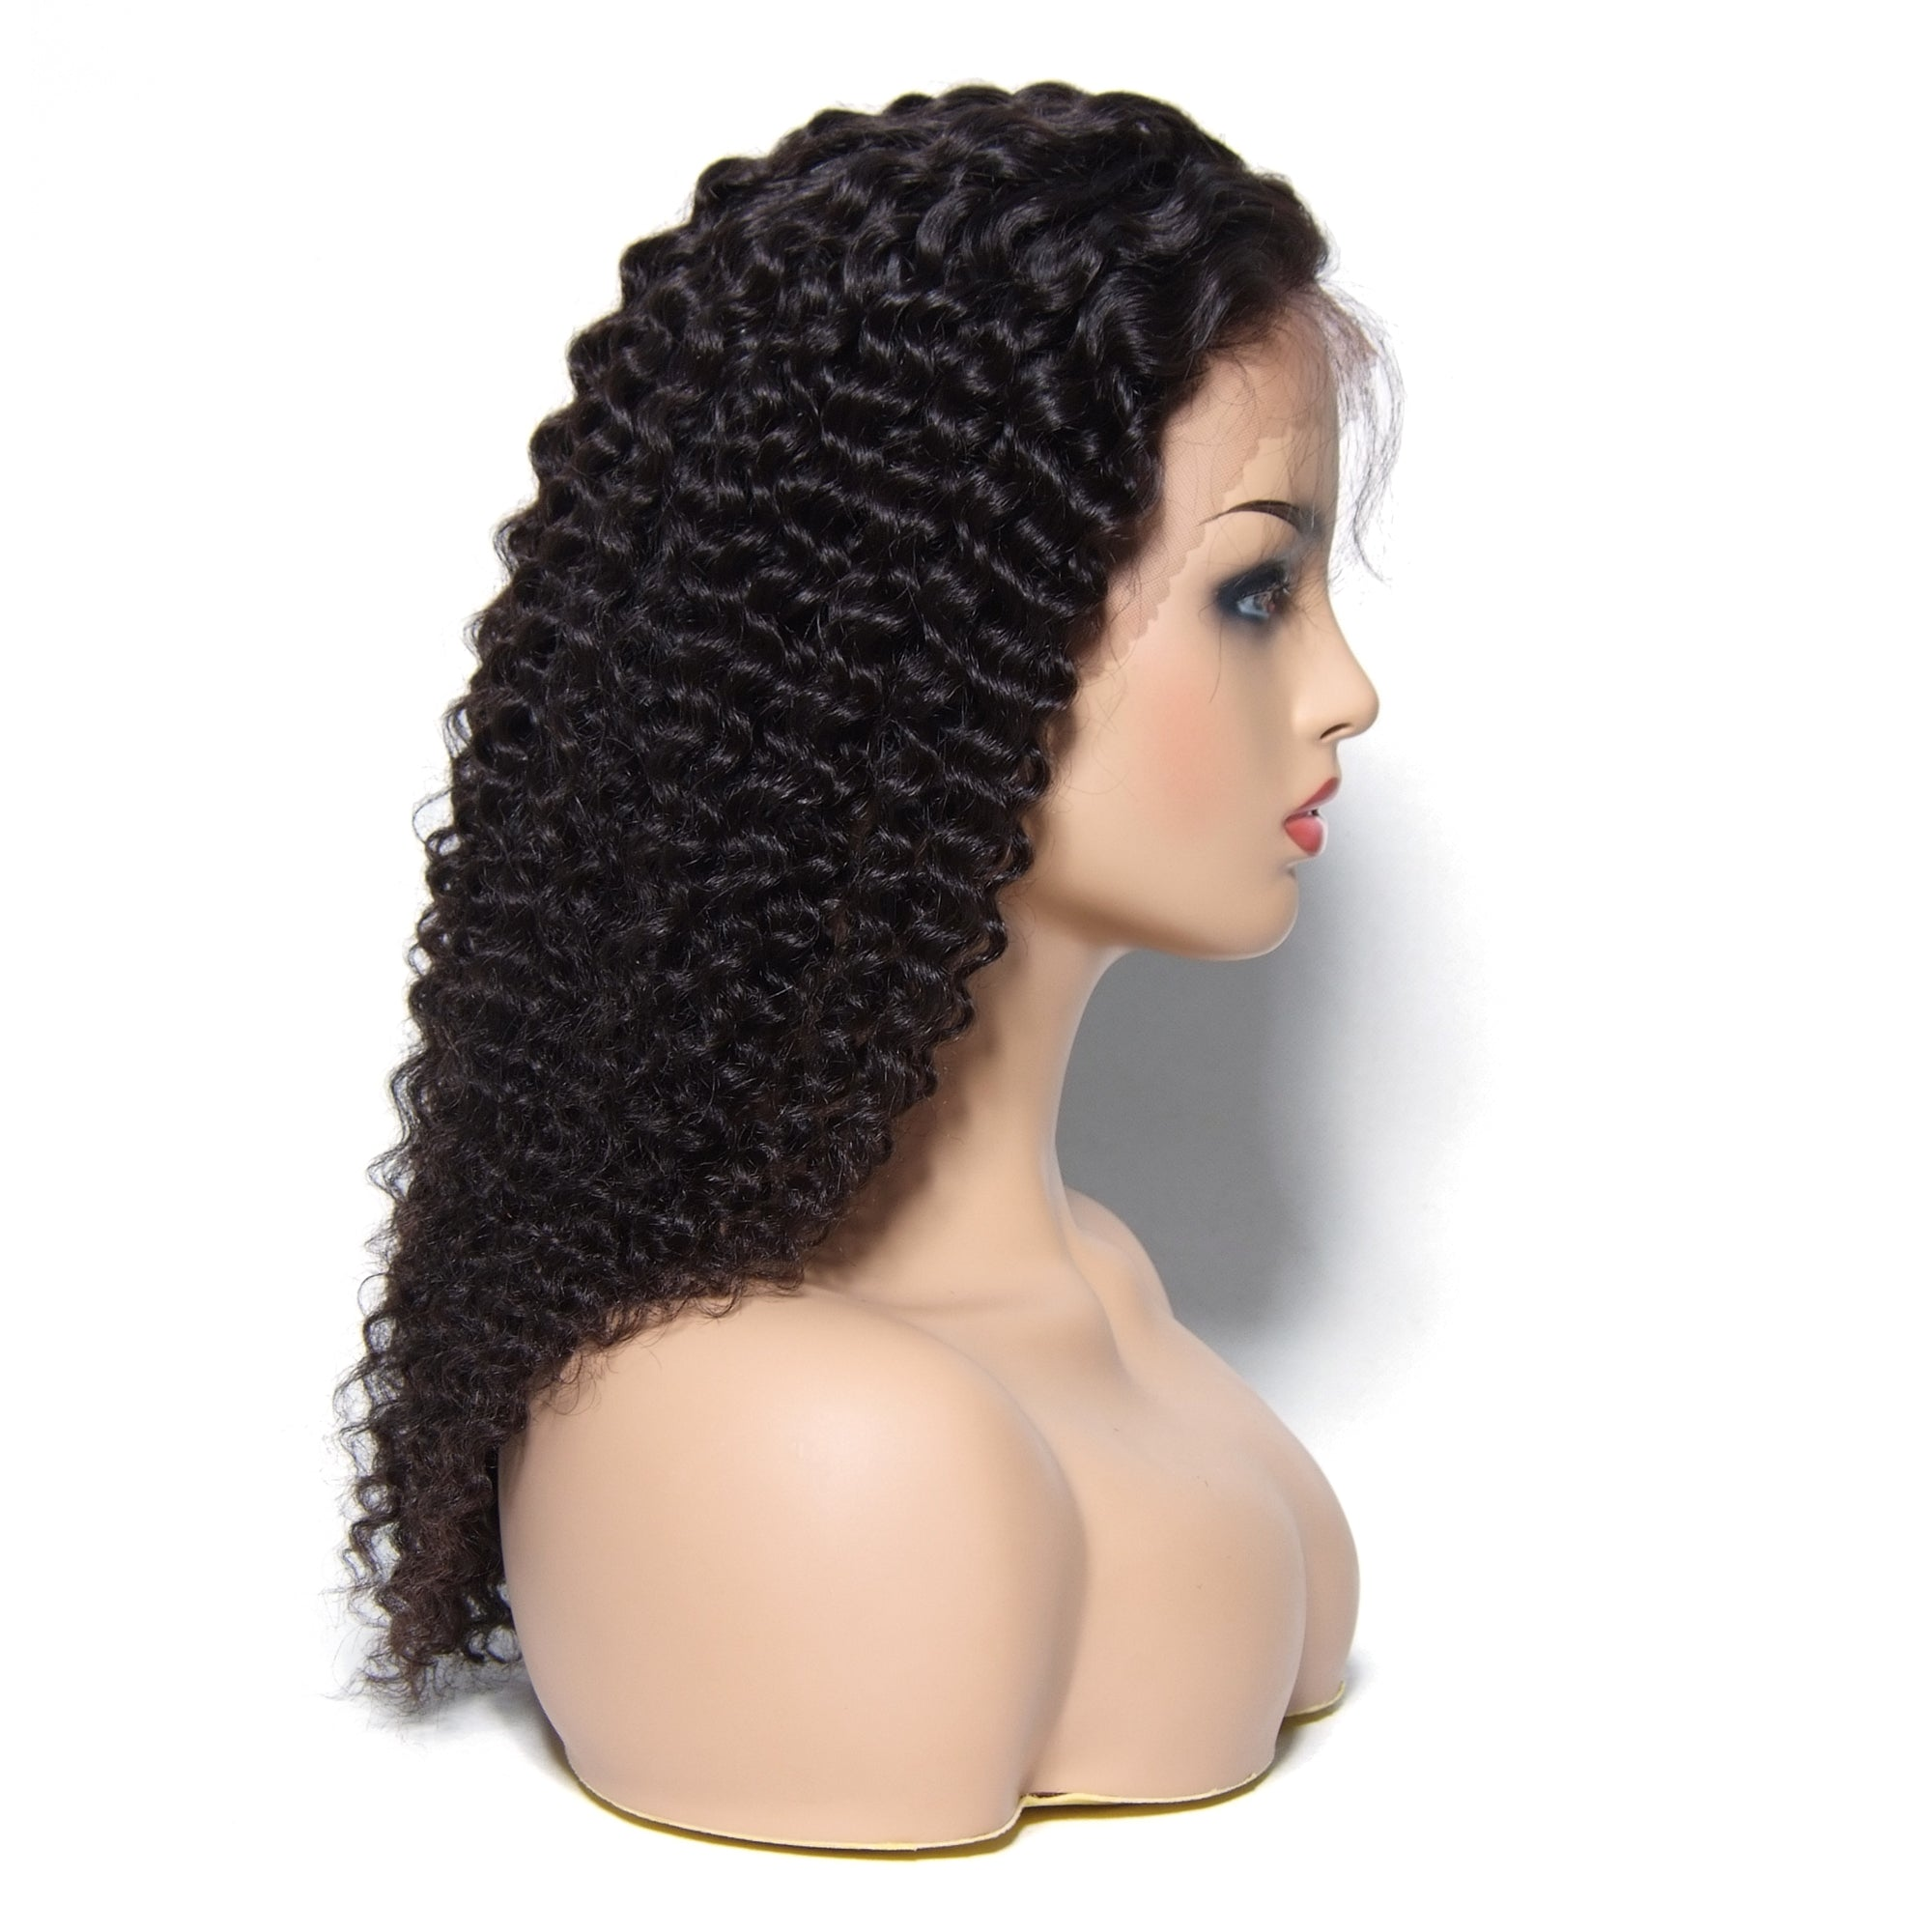 Msbeauty 180% Density Natural Hair Line Long Jerry Curl Lace Frontal Wig For Woman - MSBEAUTY HAIR